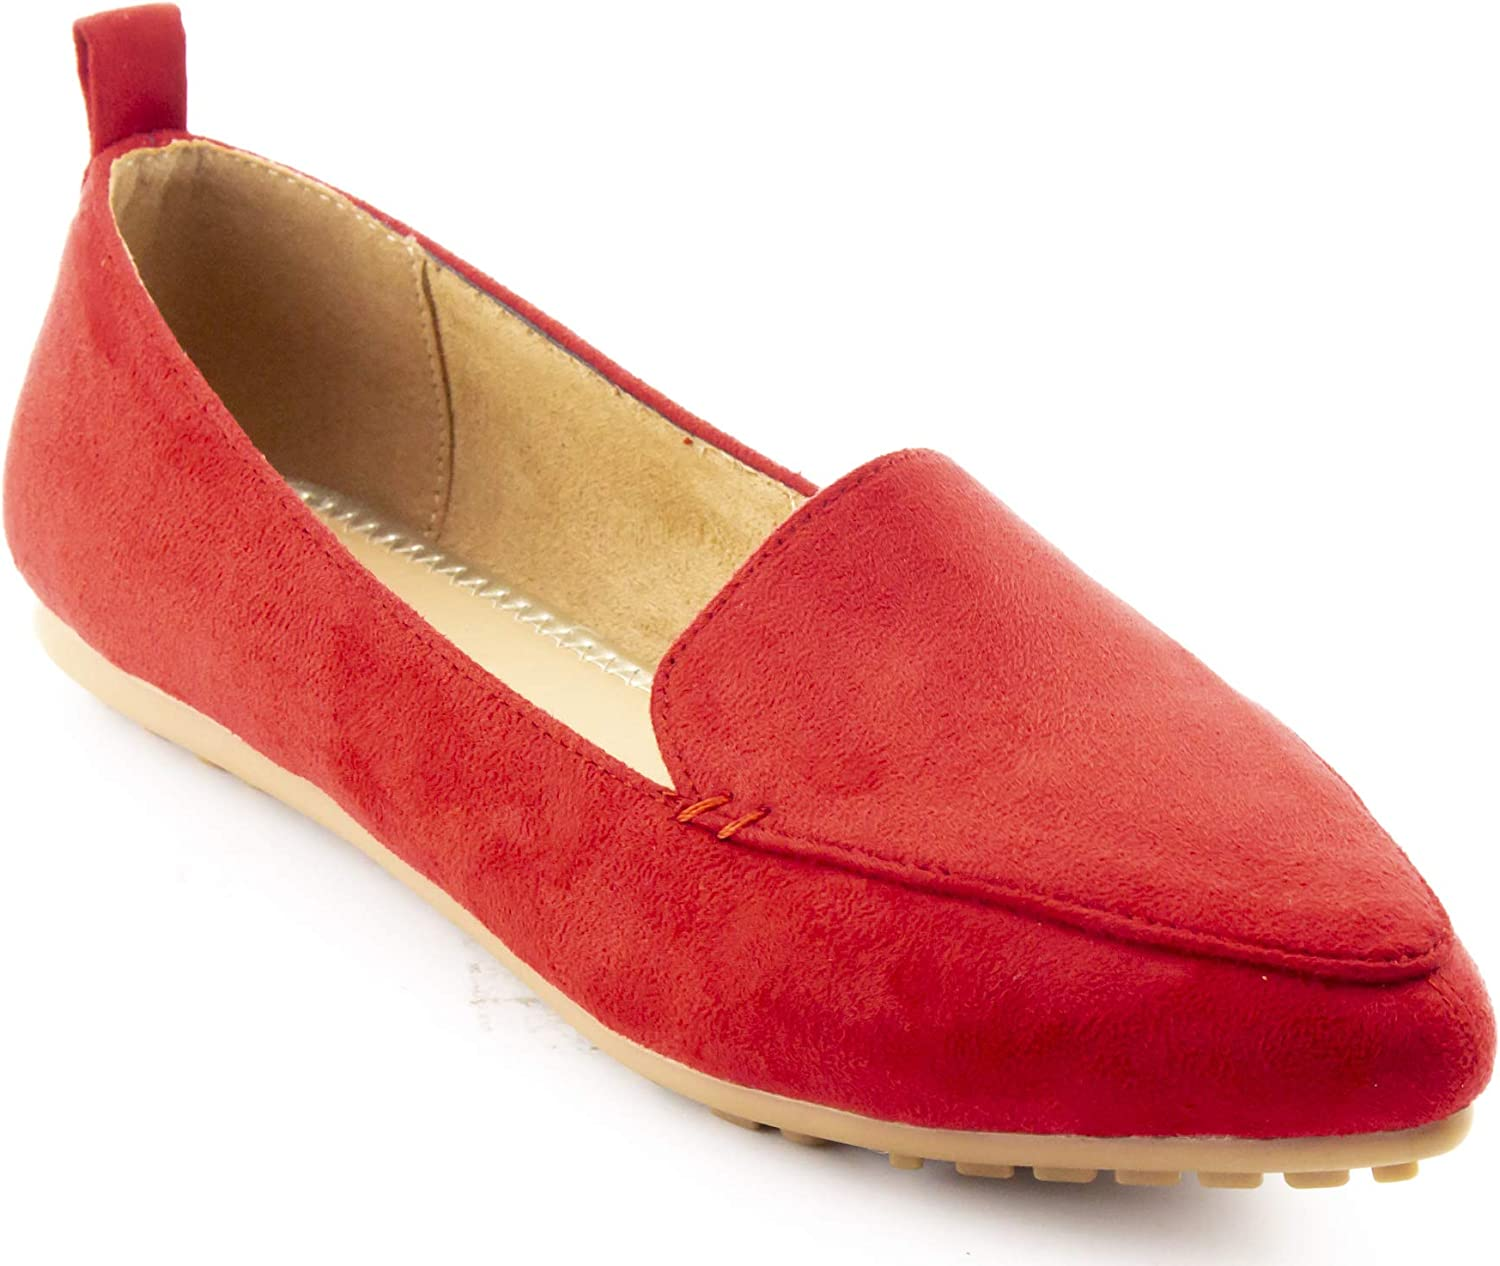 Calico KiKi Pointed Toe Flats Loafer - Comfort Slip on Faux Suede - Casual Dress Flat Cushioned Padded (6 US RED SU)